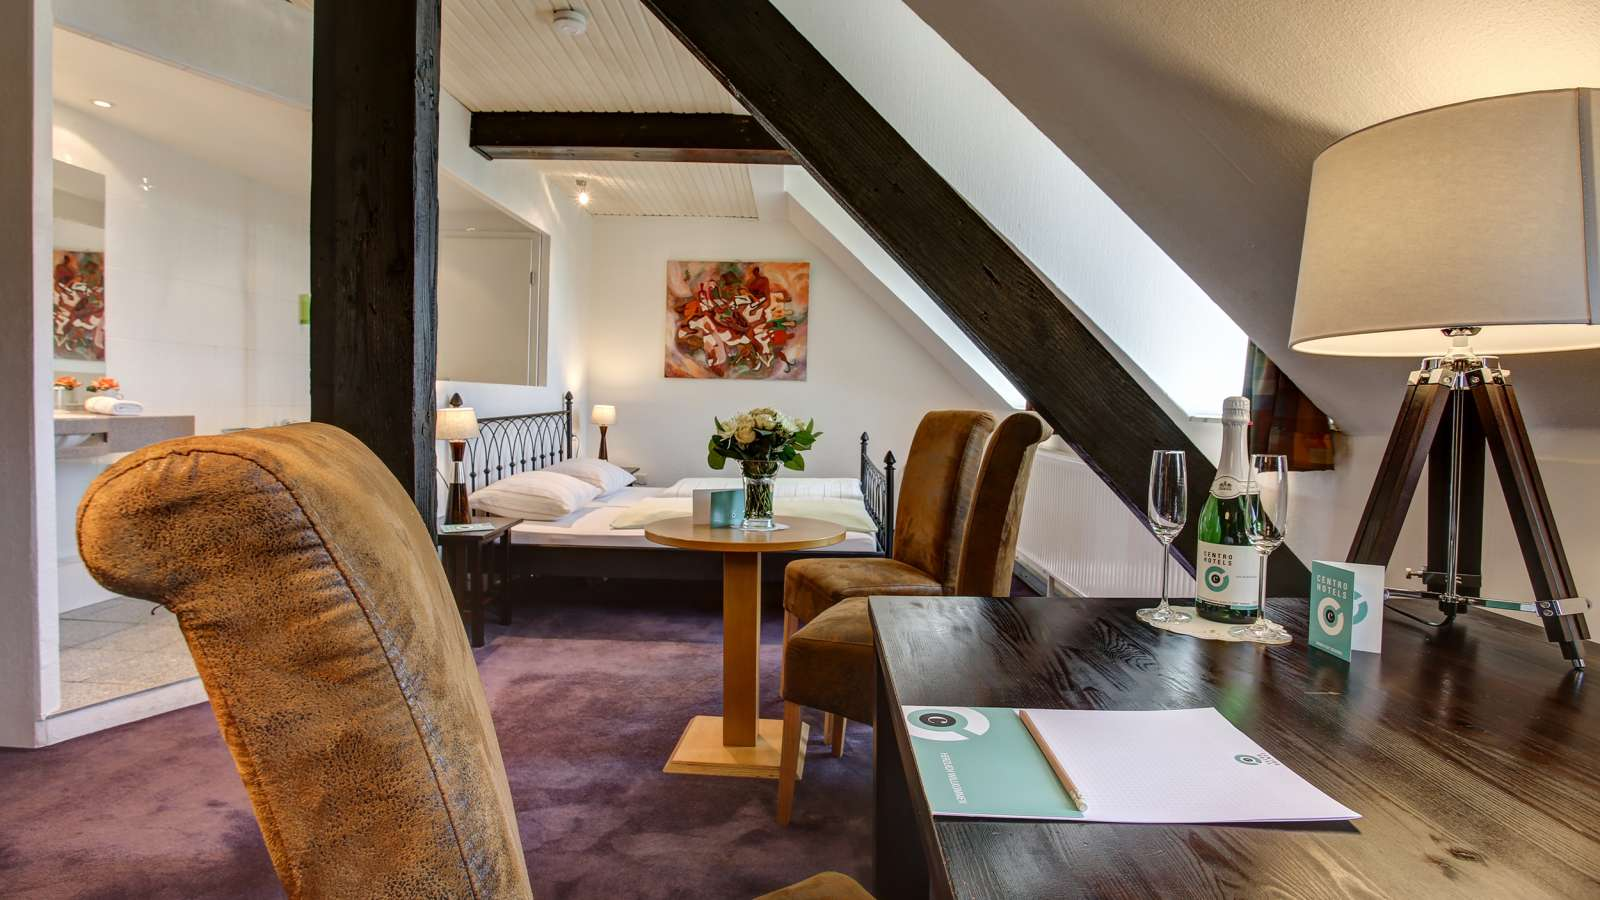 Perfect basis for your stay in Karlsruhe